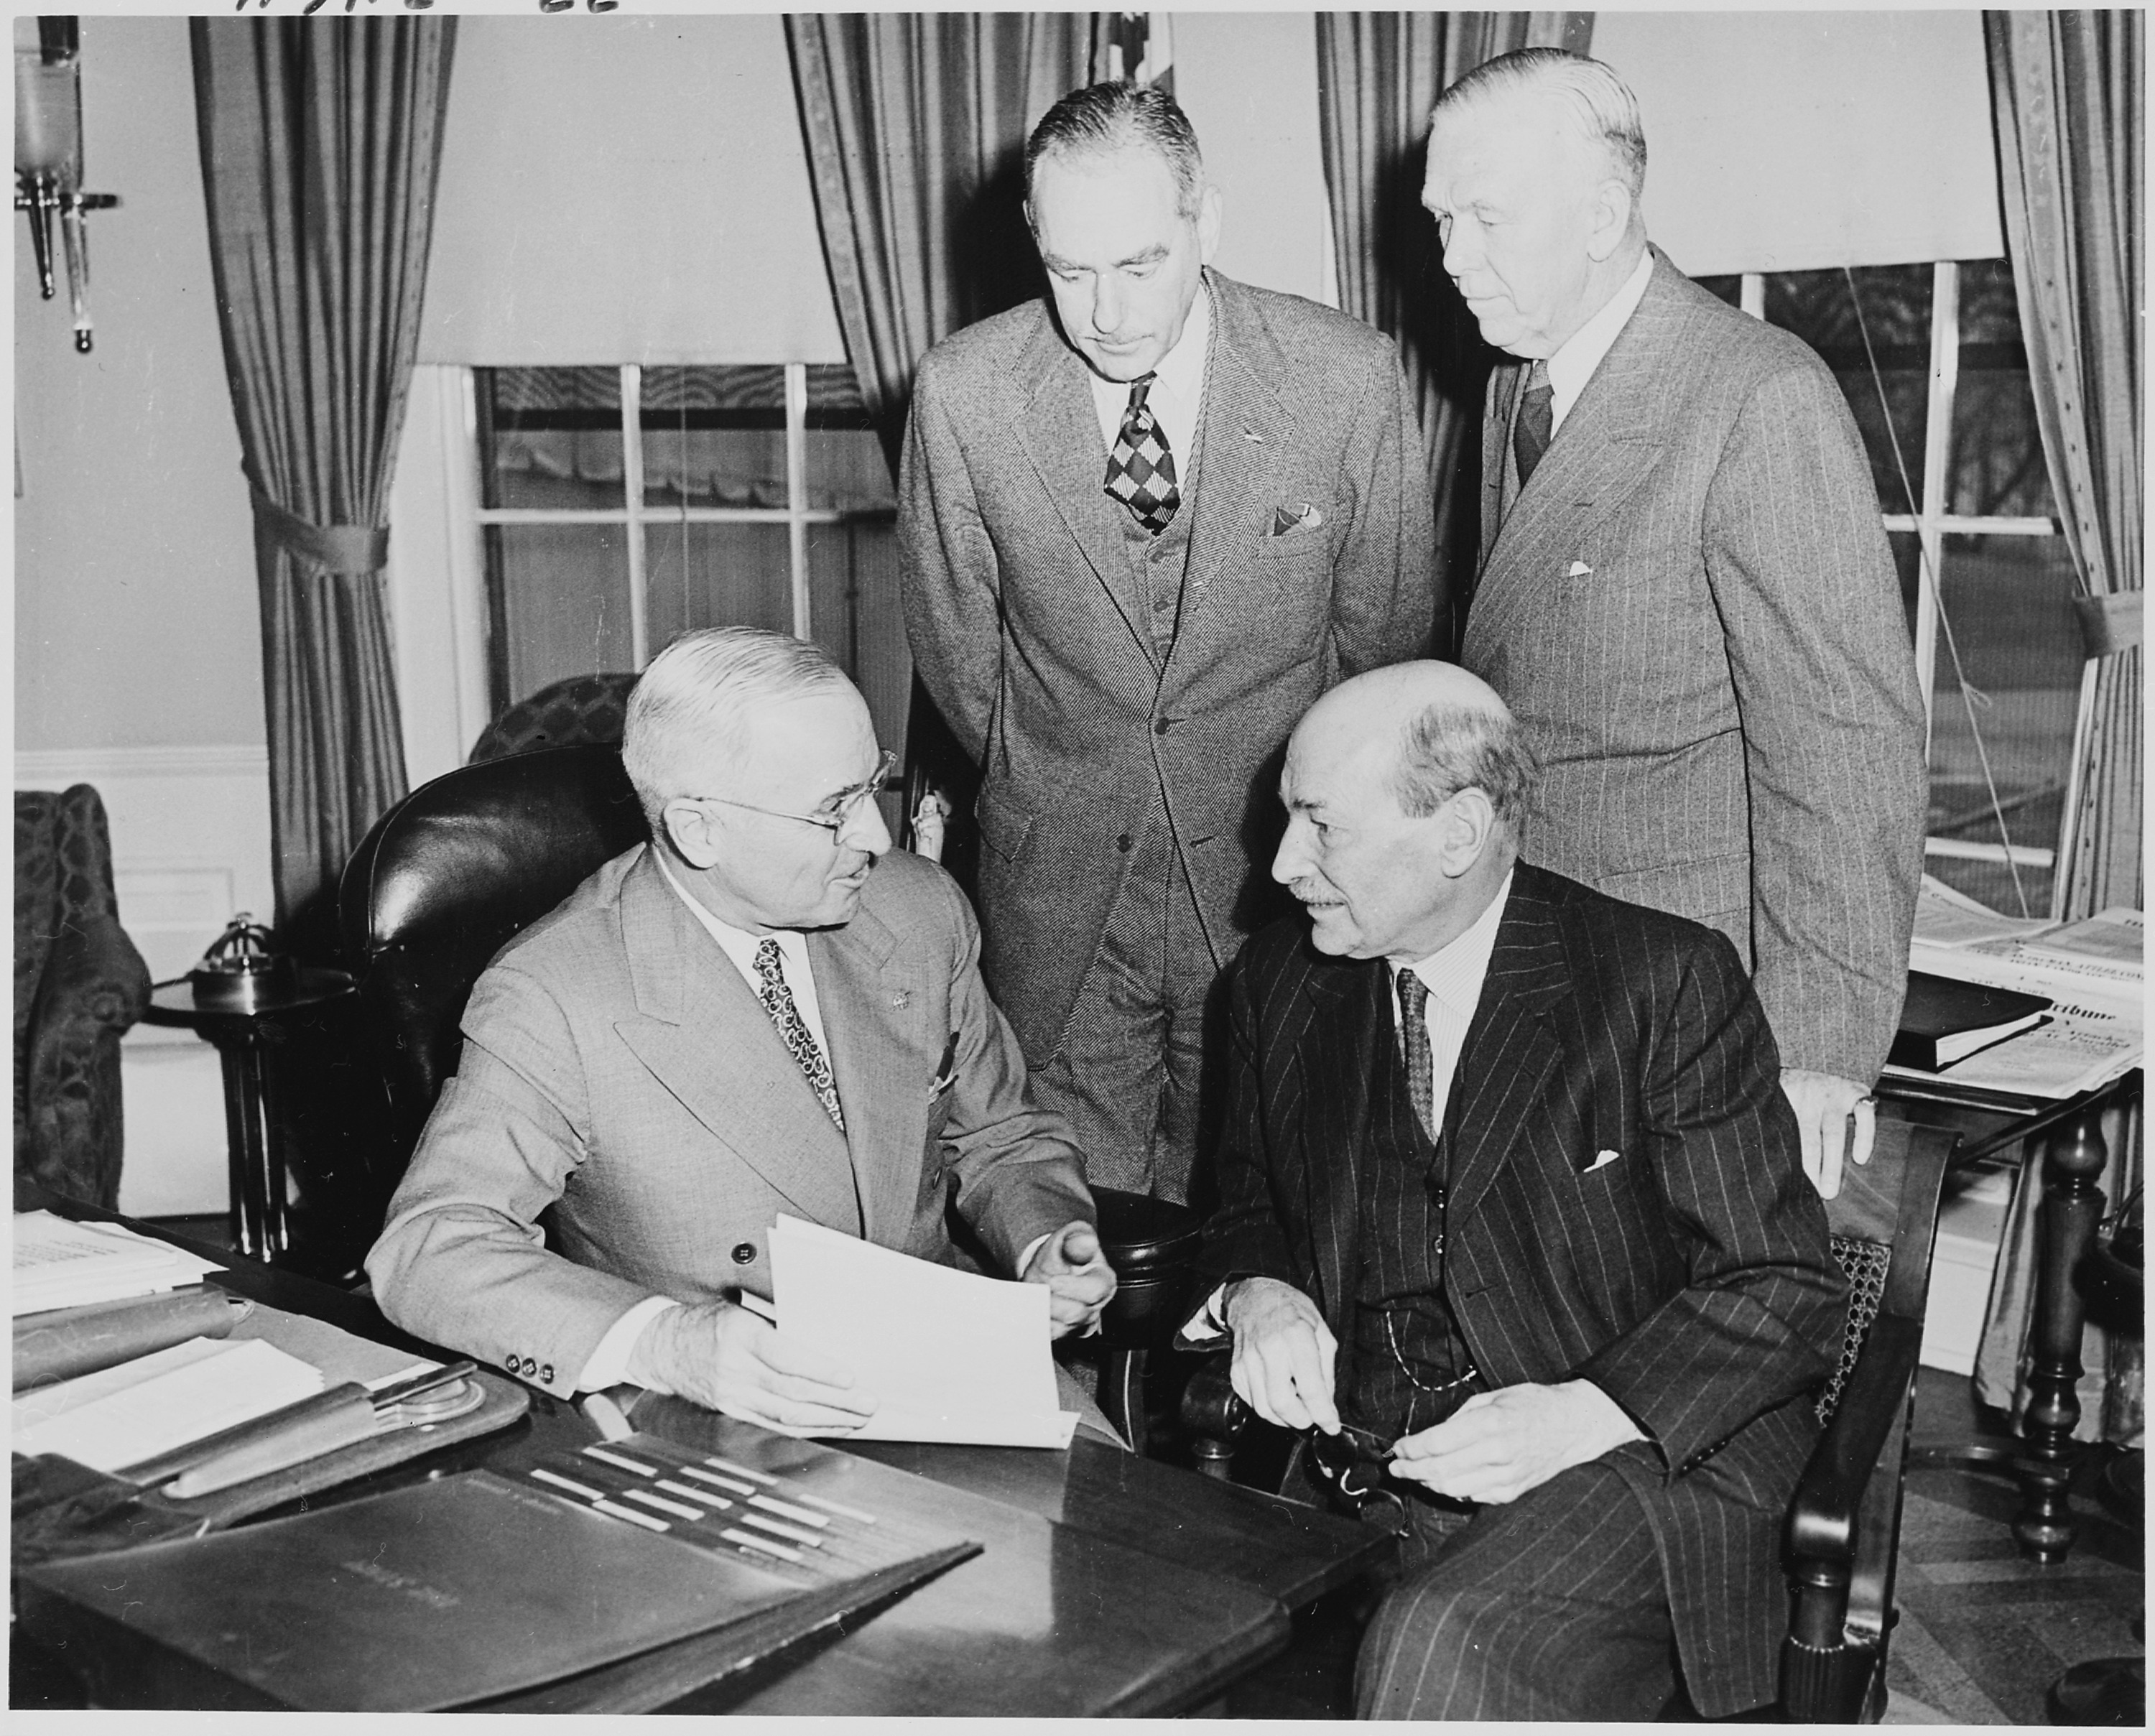 A new Marshall plan for the working class